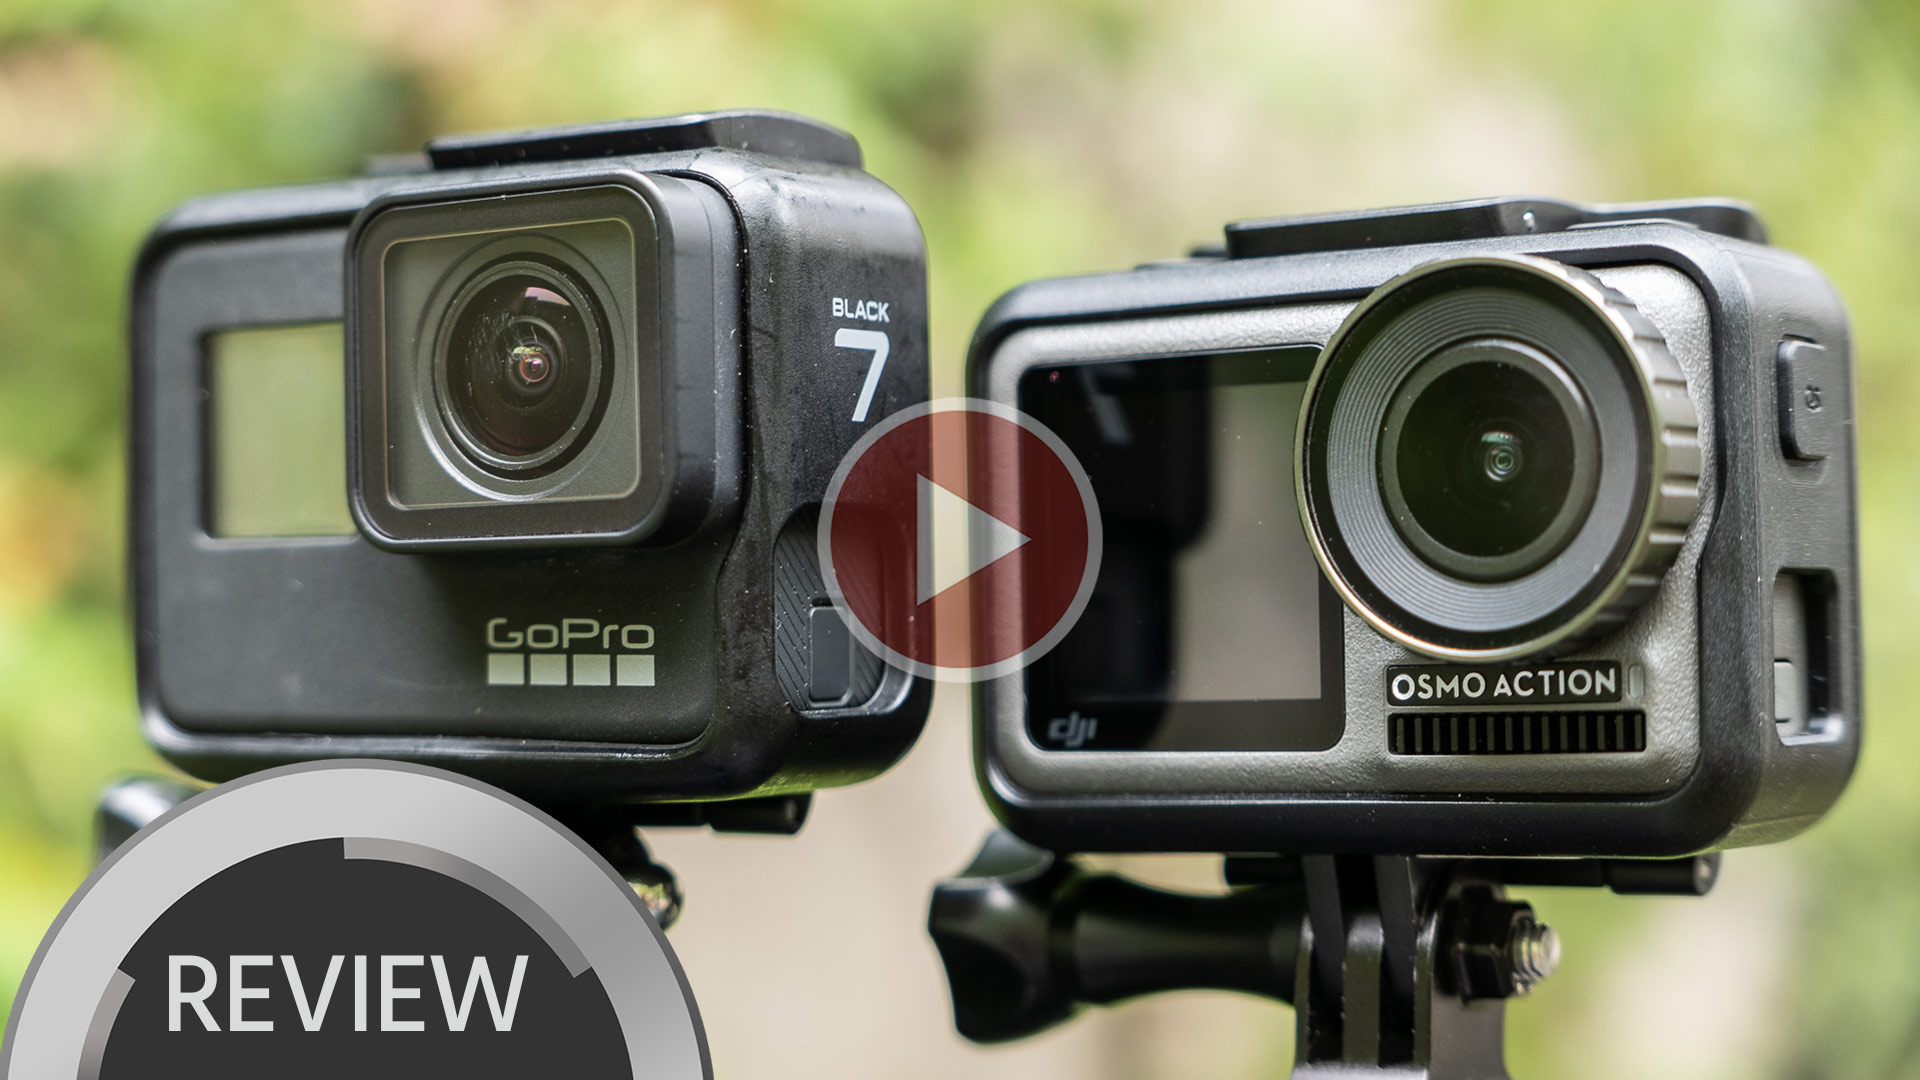 DJI Osmo Action Versus GoPro HERO7 - The King of Action Cams